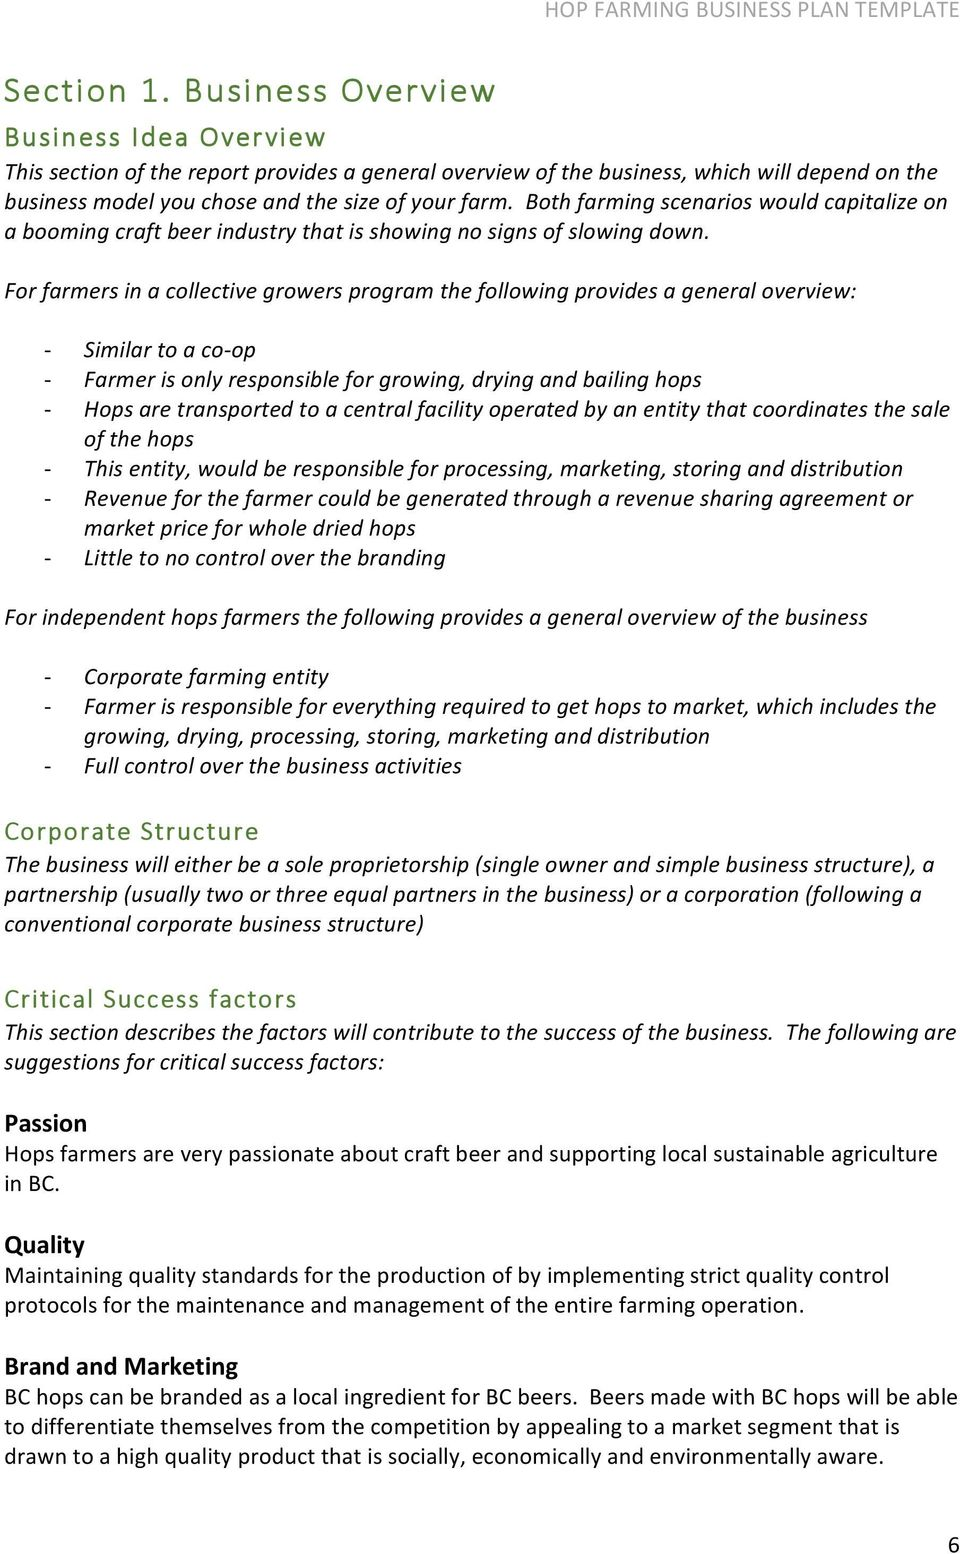 Corporate business plan sample genxeg professional business technical report hop farming business plan template pdf corporate business plan template cheaphphosting Images